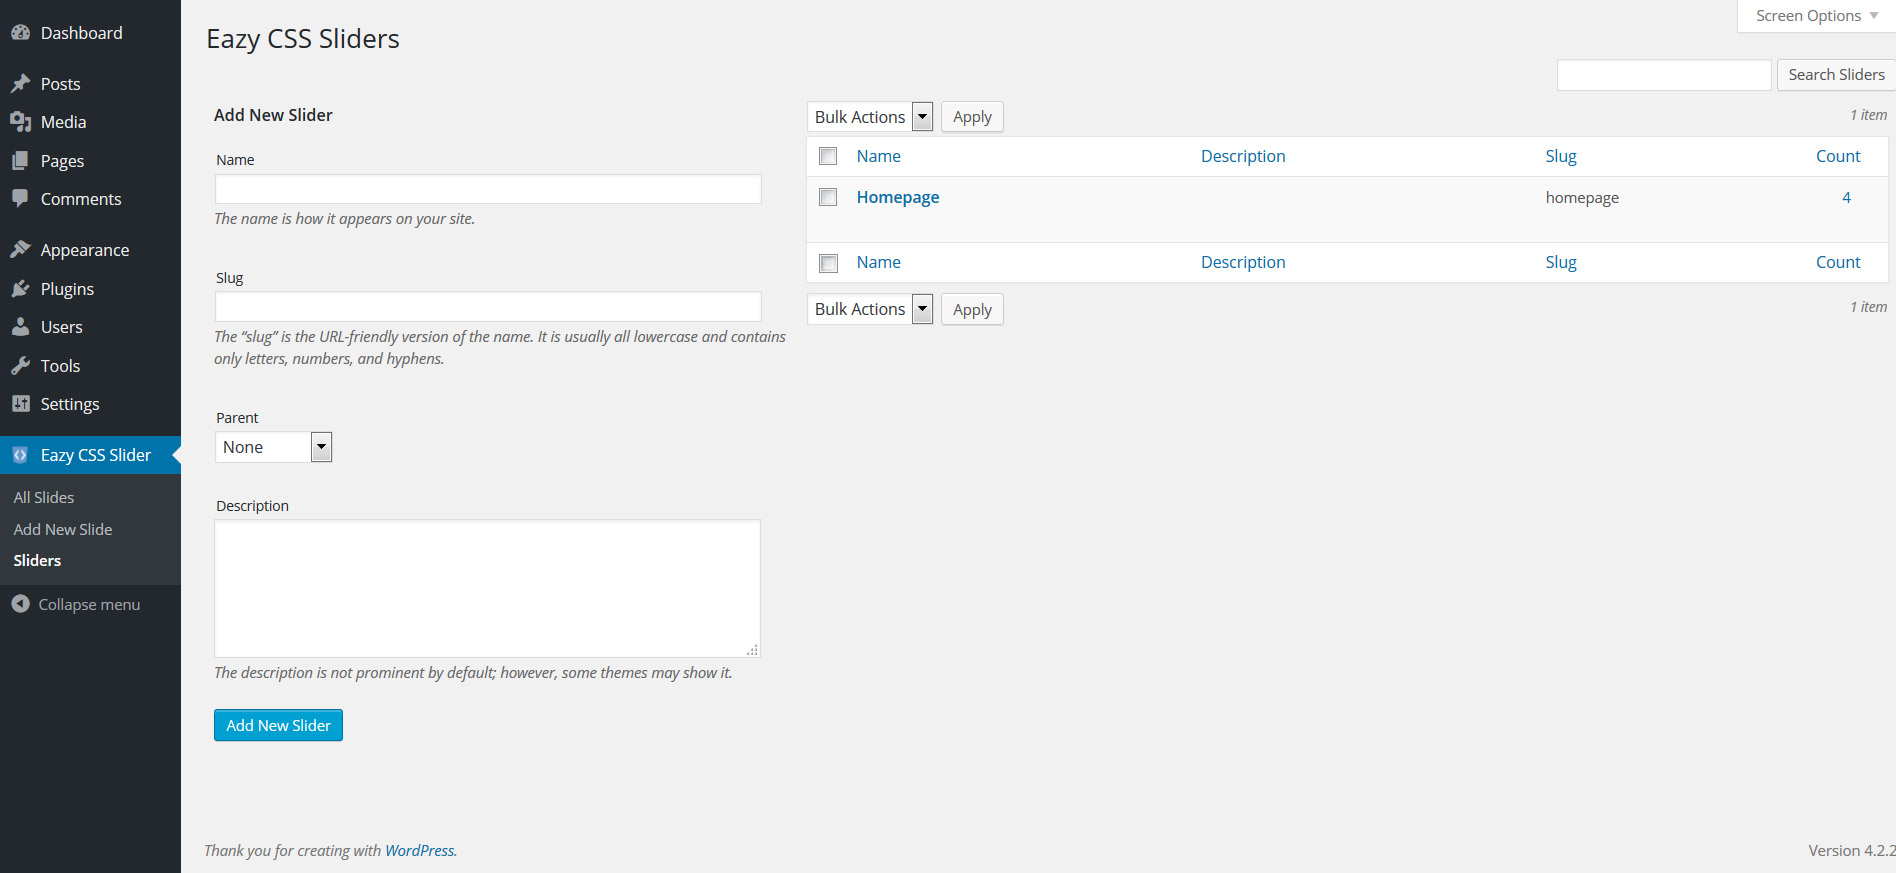 Adding a slider is eazy. The plugin lets you add sliders like you would a post category.